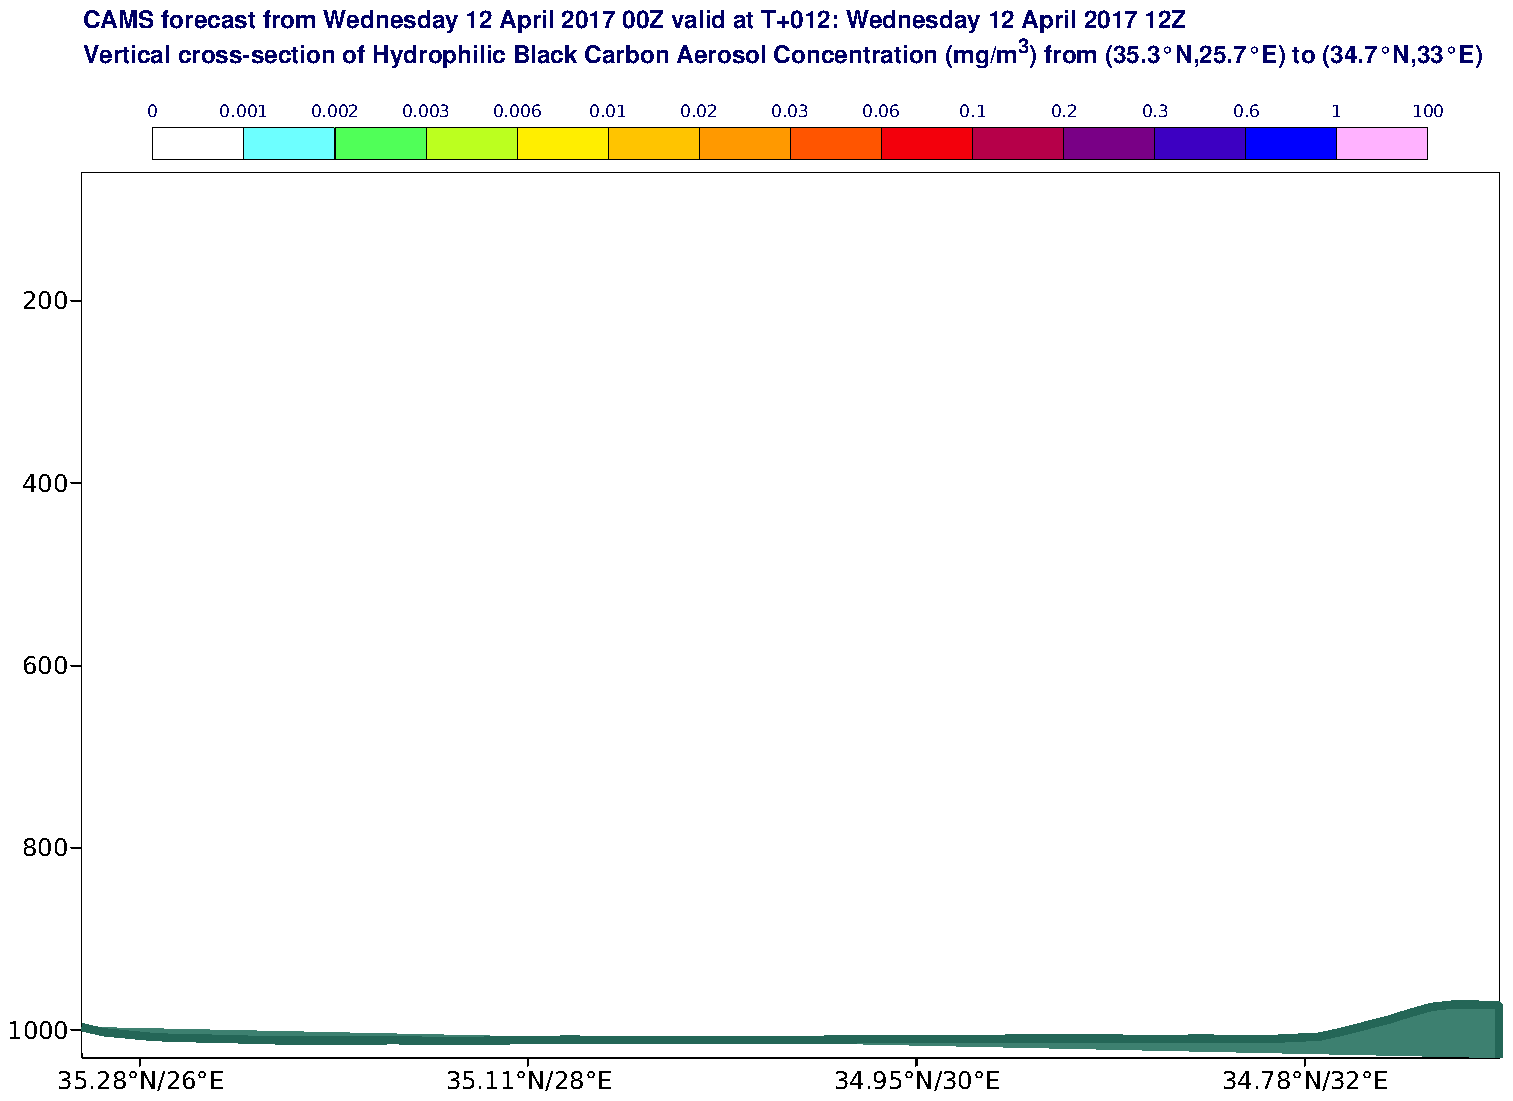 Vertical cross-section of Hydrophilic Black Carbon Aerosol Concentration (mg/m3) valid at T12 - 2017-04-12 12:00